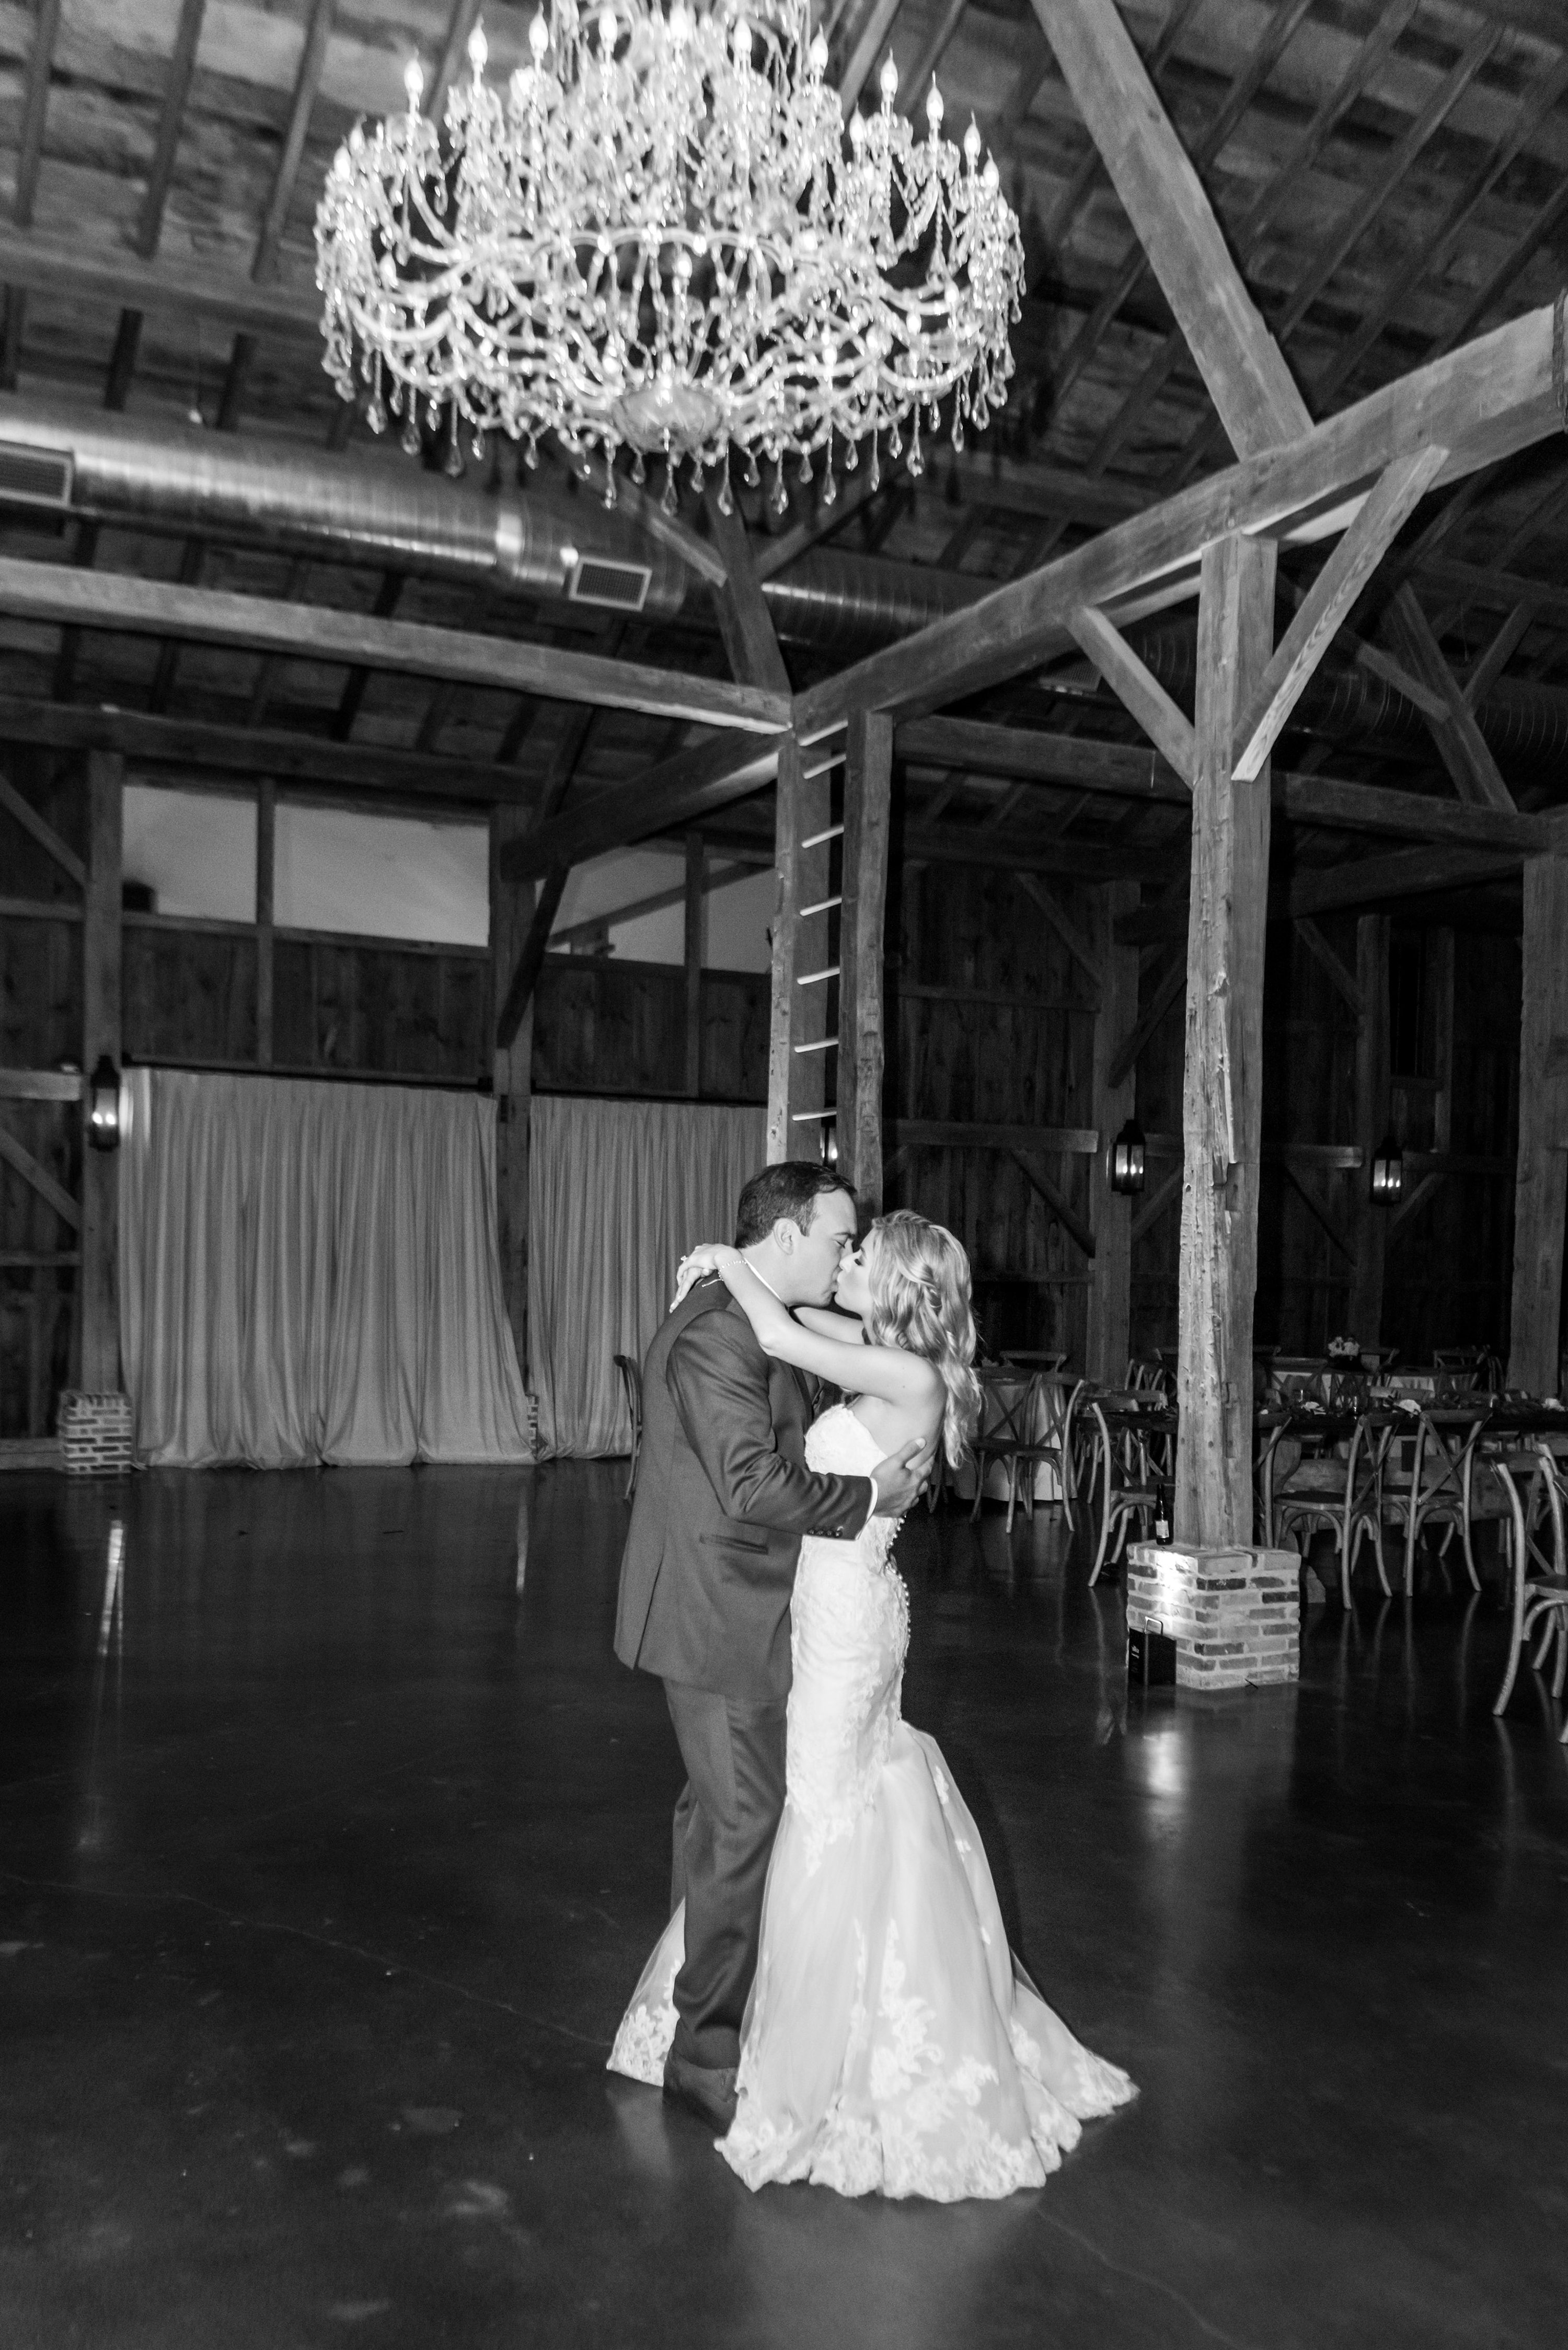 Laura and Travis got married at the gorgeous Beckendorff Farms, and we loved the way the decorated the barn with tons of greenery and a neutral color palette. They ended the wedding with a fun sparkler exit surrounded by their family and friends